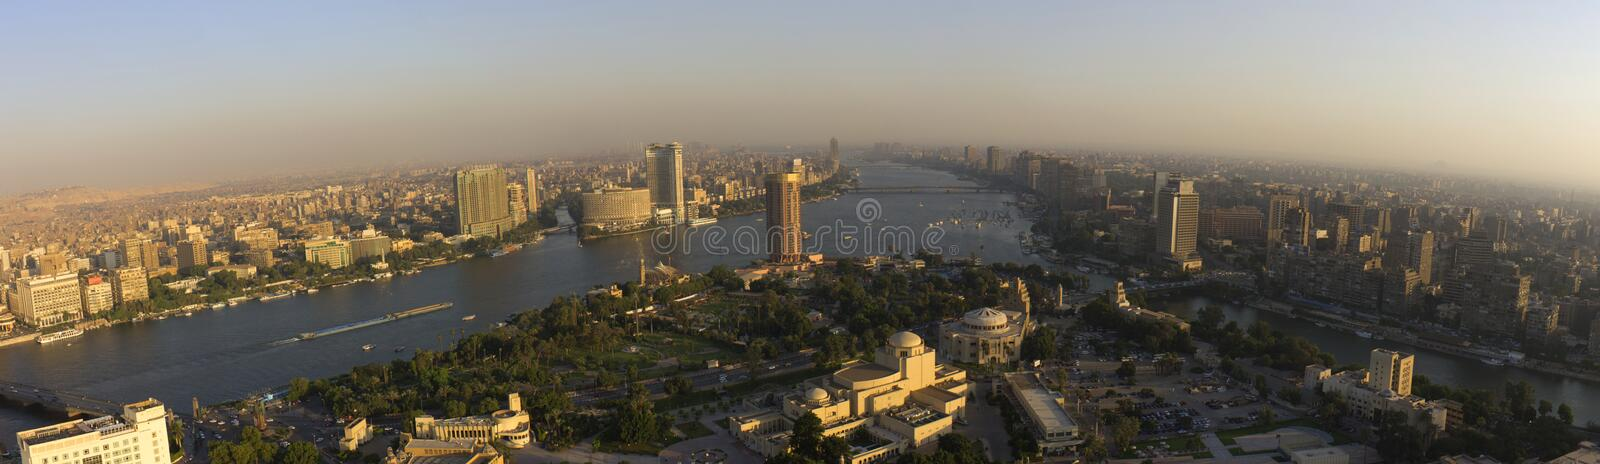 Sunset in Cairo. Cairo panorama during sunset taken from the Cairo tower royalty free stock photography